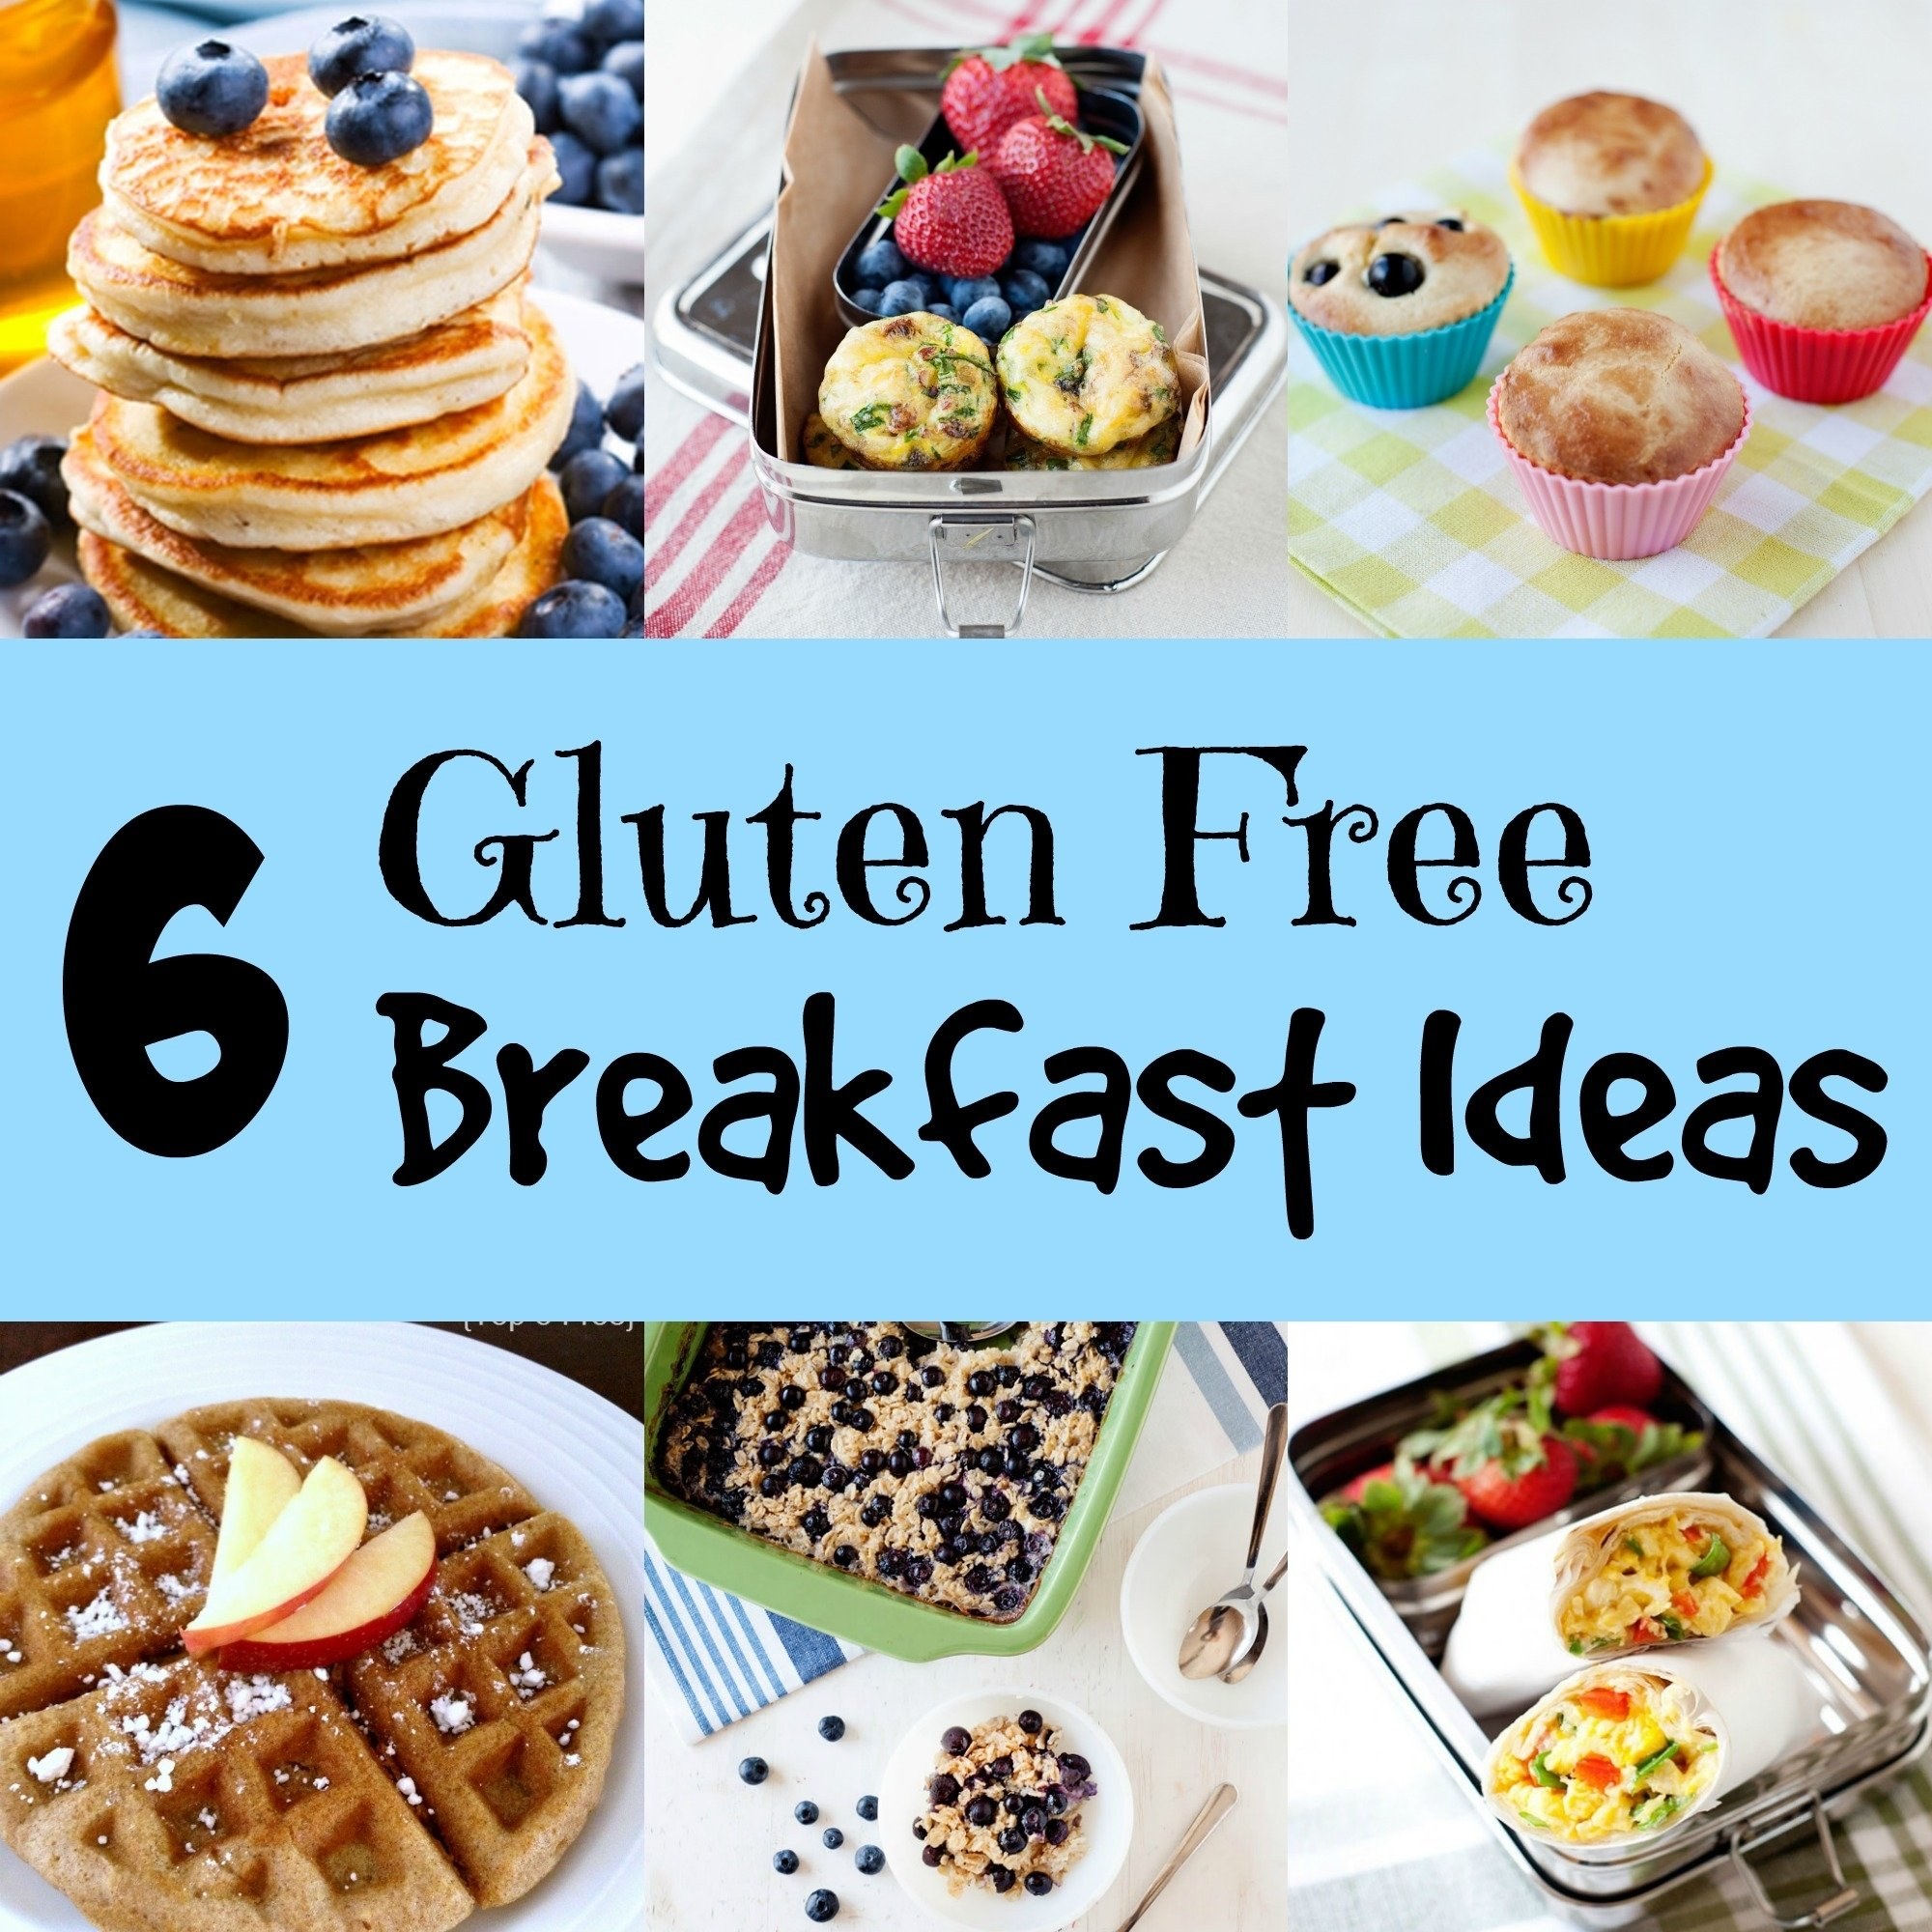 10 Fashionable Easy Gluten Free Breakfast Ideas